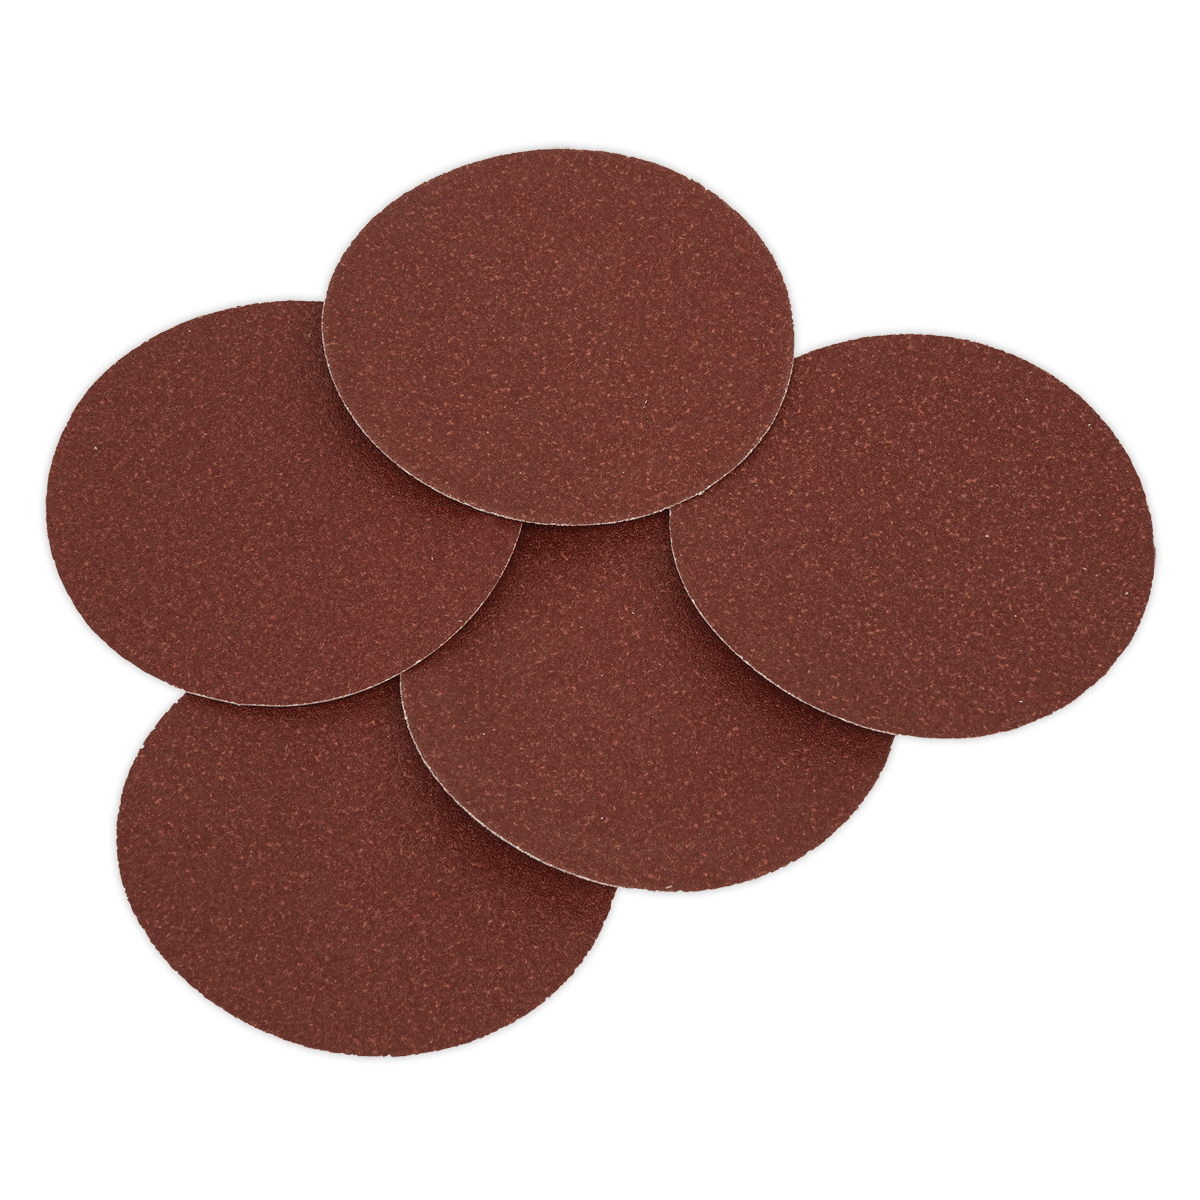 Sealey Sanding Disc Ø125mm 80Grit Adhesive Backed Pack of 5 SSD01   Suitable for Sealey disc sanders and other leading brands.   toolforce.ie